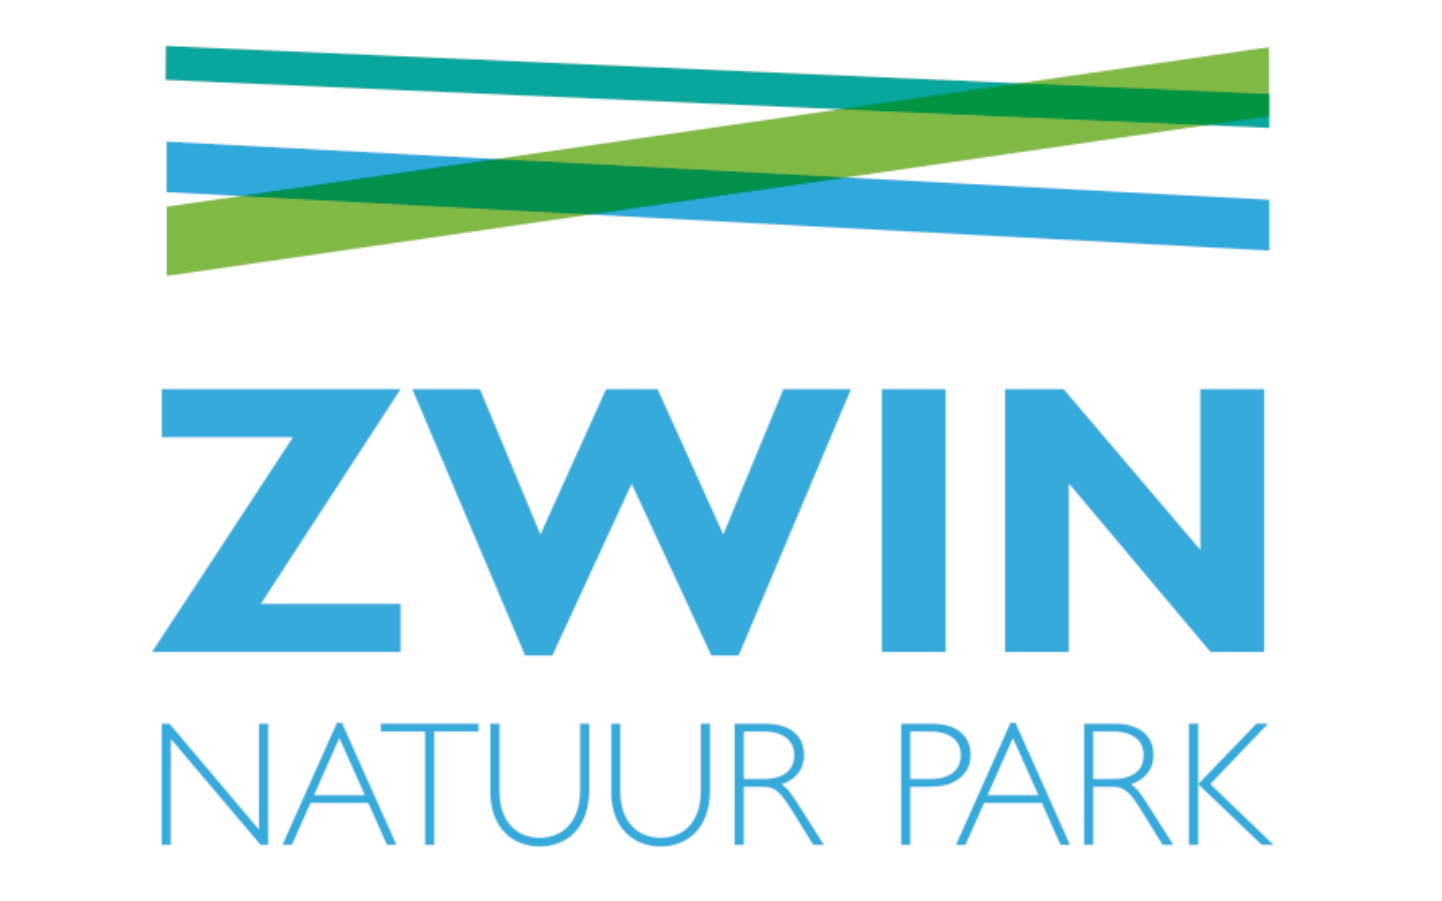 Zwin Natuur Park opens 26th of May 2020